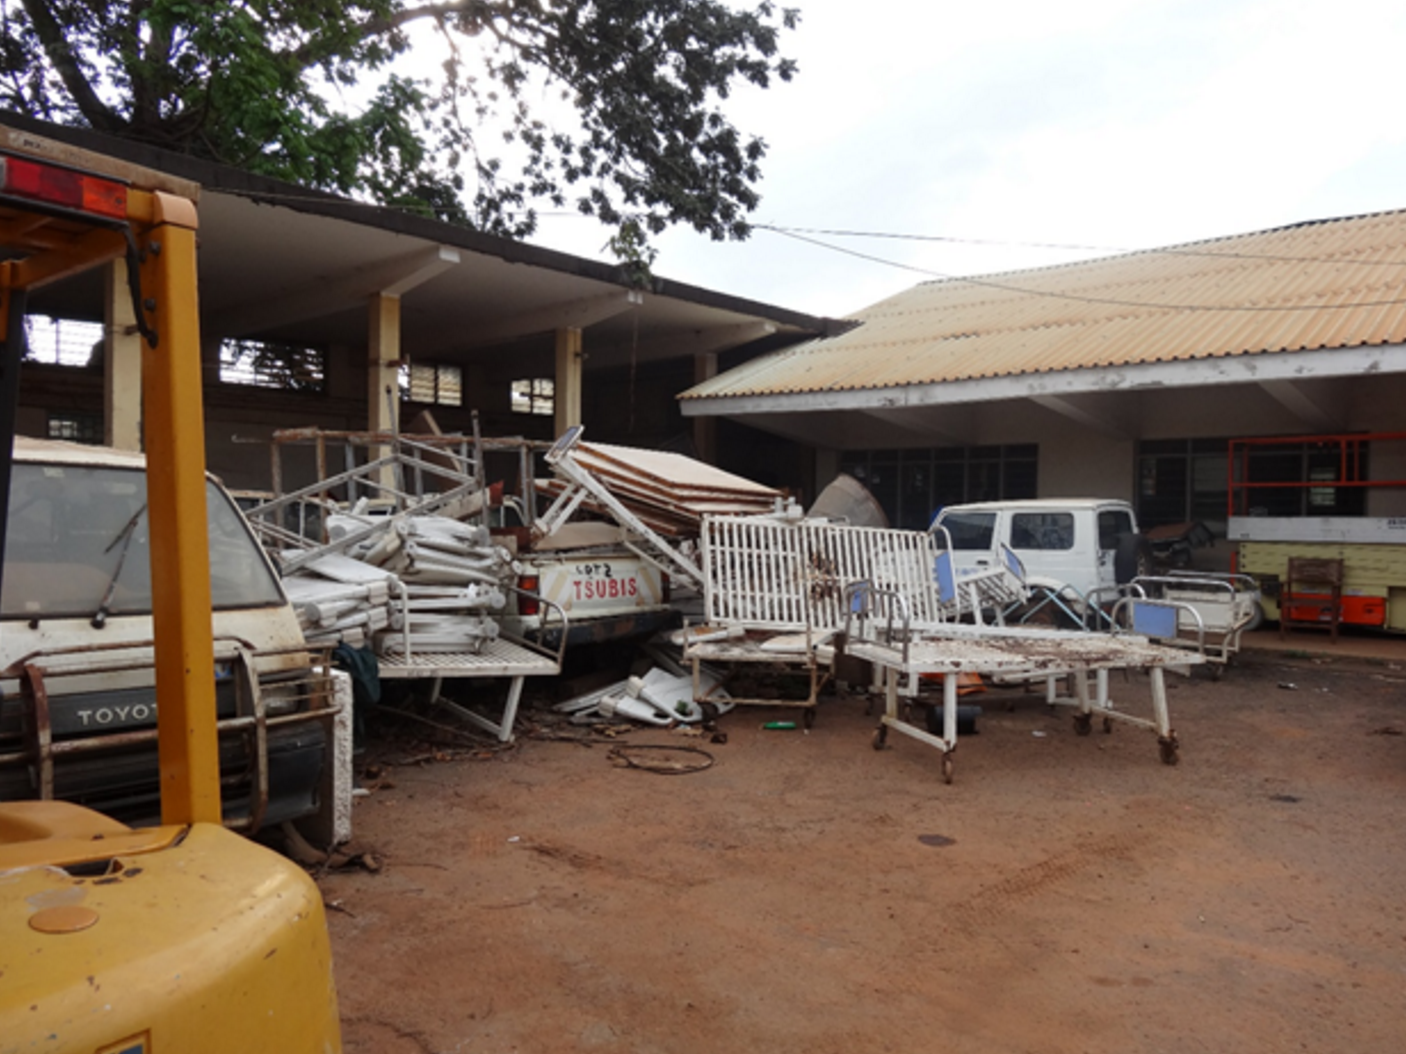 At Mulago Hospital, the 'Medical Device Graveyard' is where old medical equipment goes to die. Many broken devices have been out of service for many years, but remain (sardonically) affixed with prominent notes that read 'NEEDS FIXING'.    Photo by Arbutus Medical